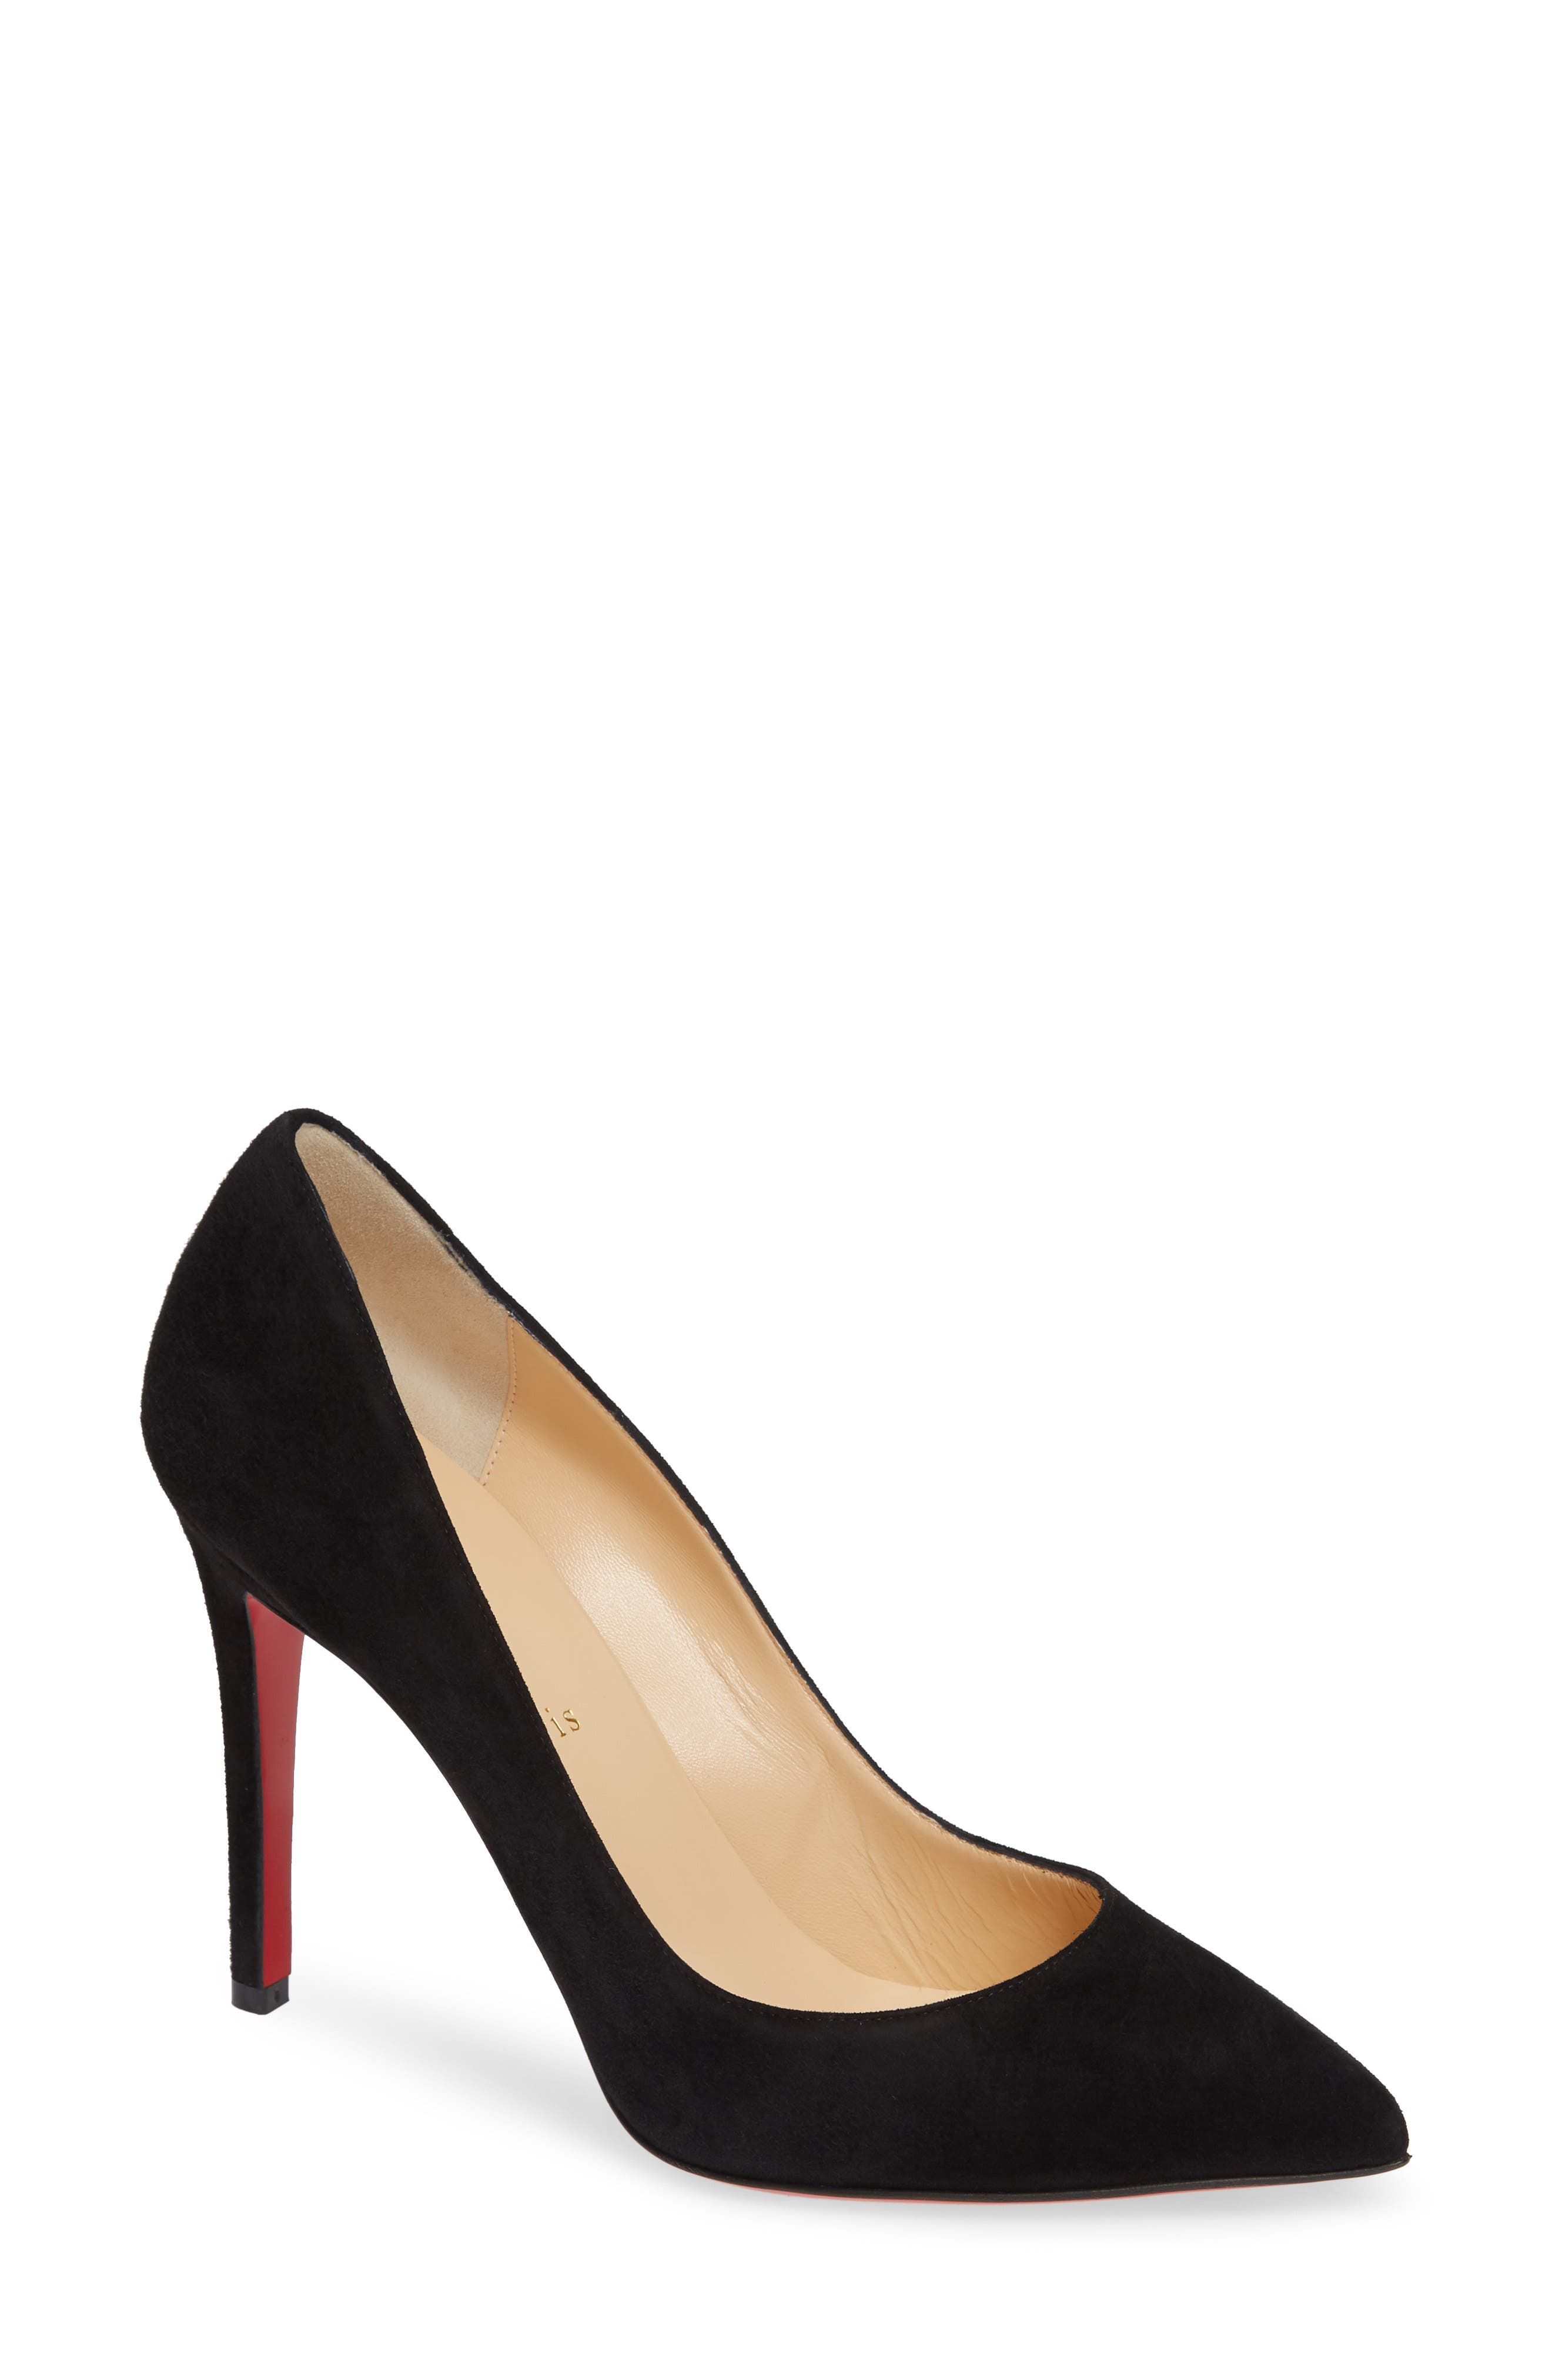 CHRISTIAN LOUBOUTIN,                             Pigalle Pointy Toe Pump,                             Main thumbnail 1, color,                             BLACK SUEDE